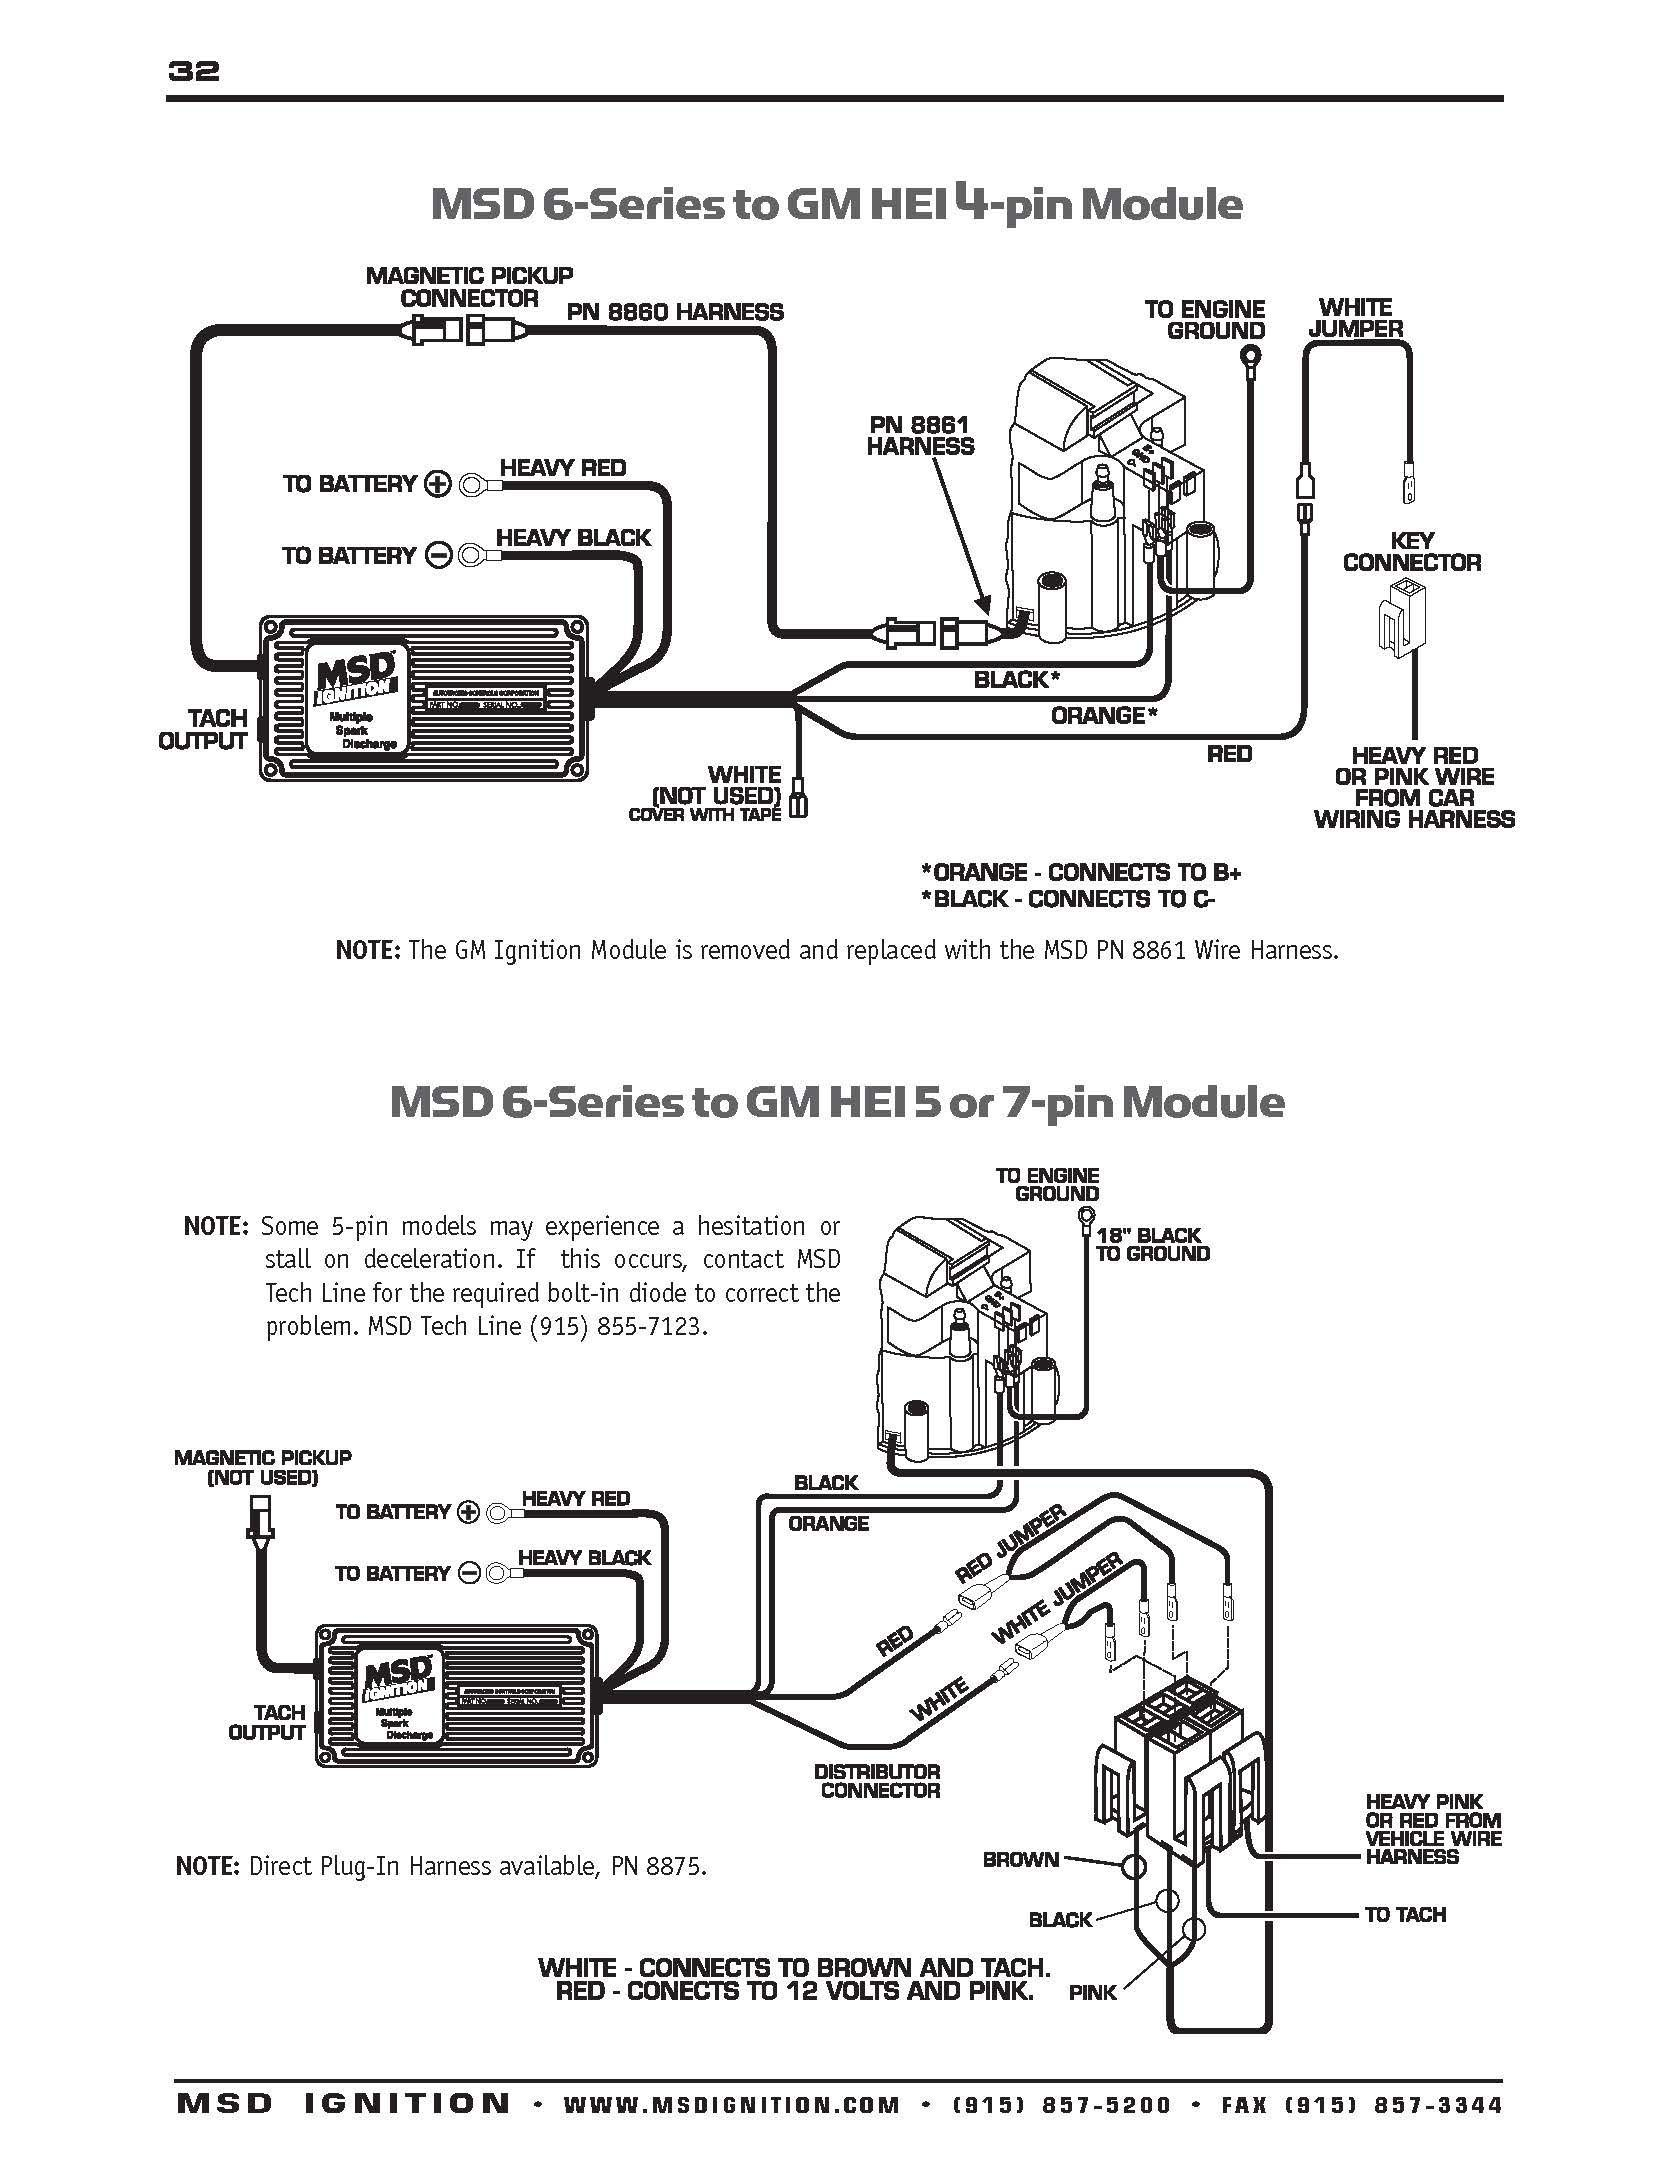 Msd Ignition Wiring Diagrams Coilbuildstutorials Ignition Coil Diagram Wire